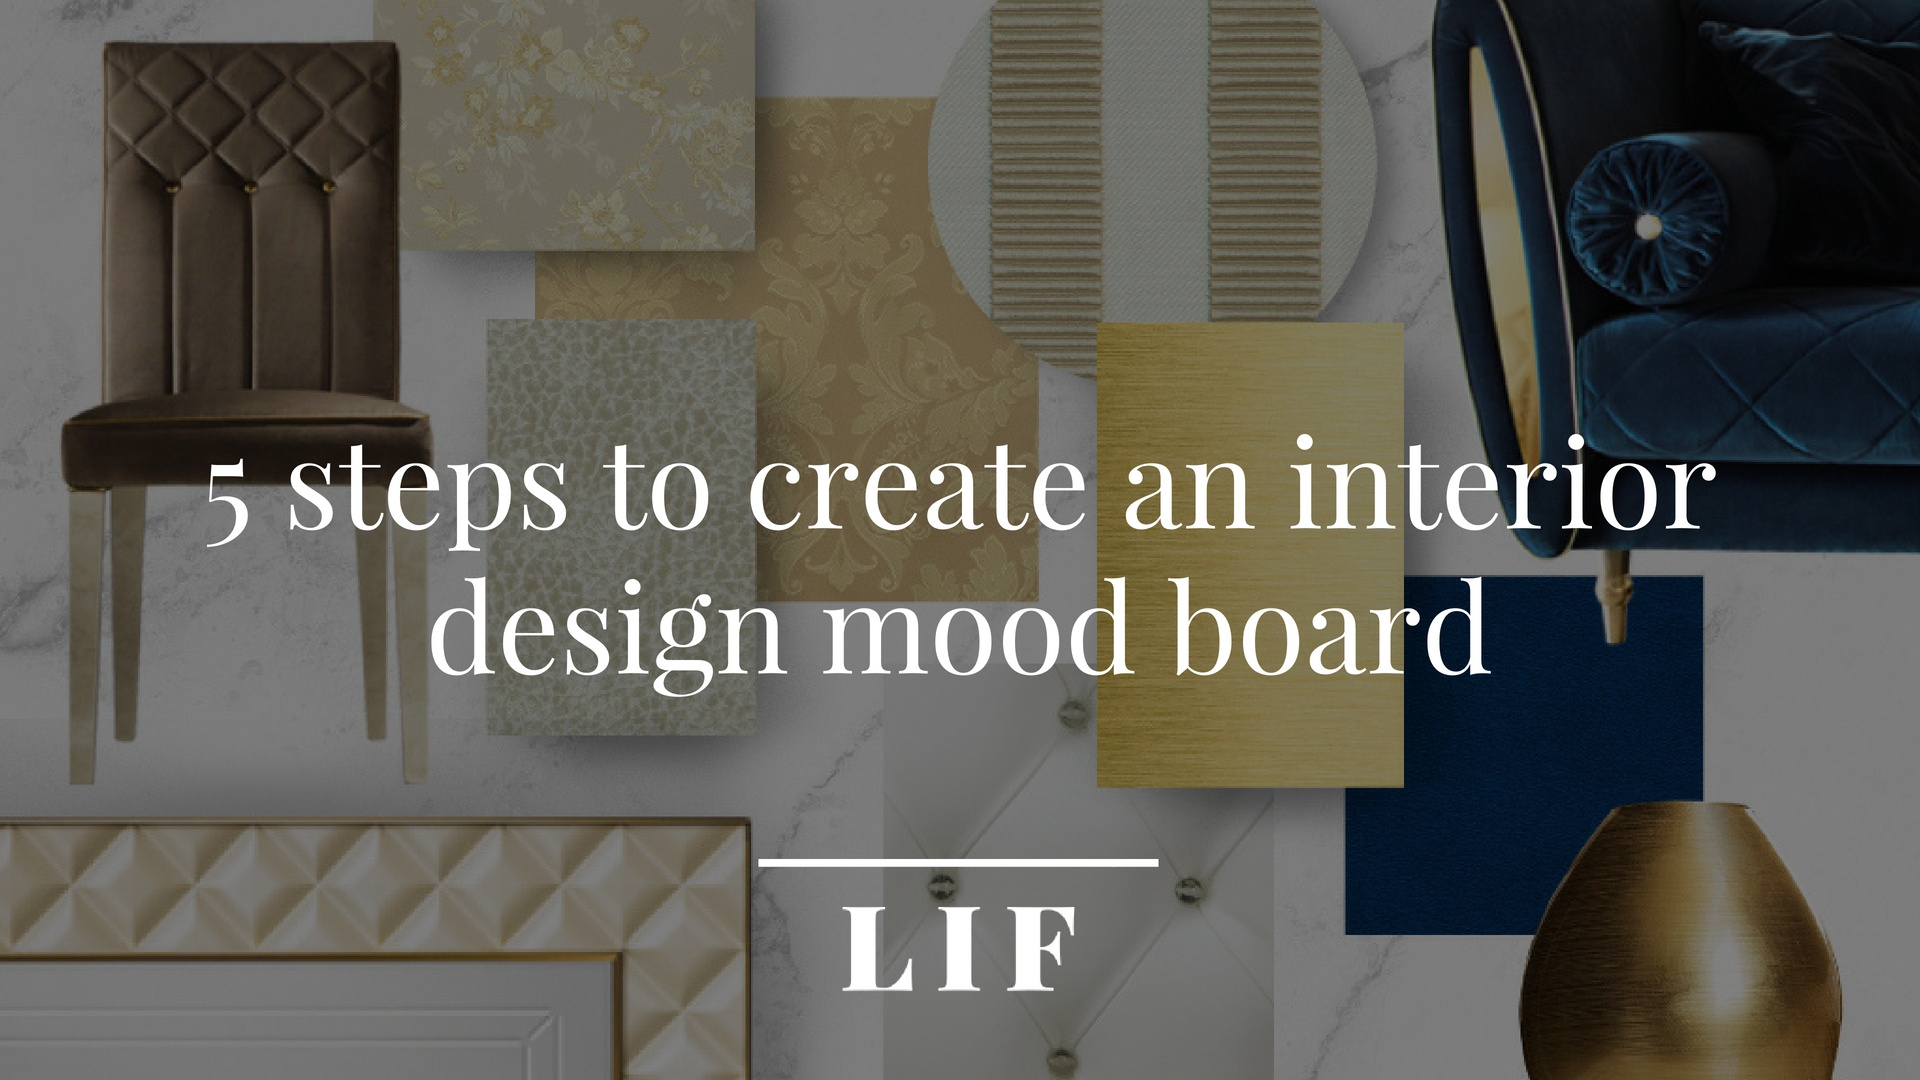 create an interior design moodboard-what to do